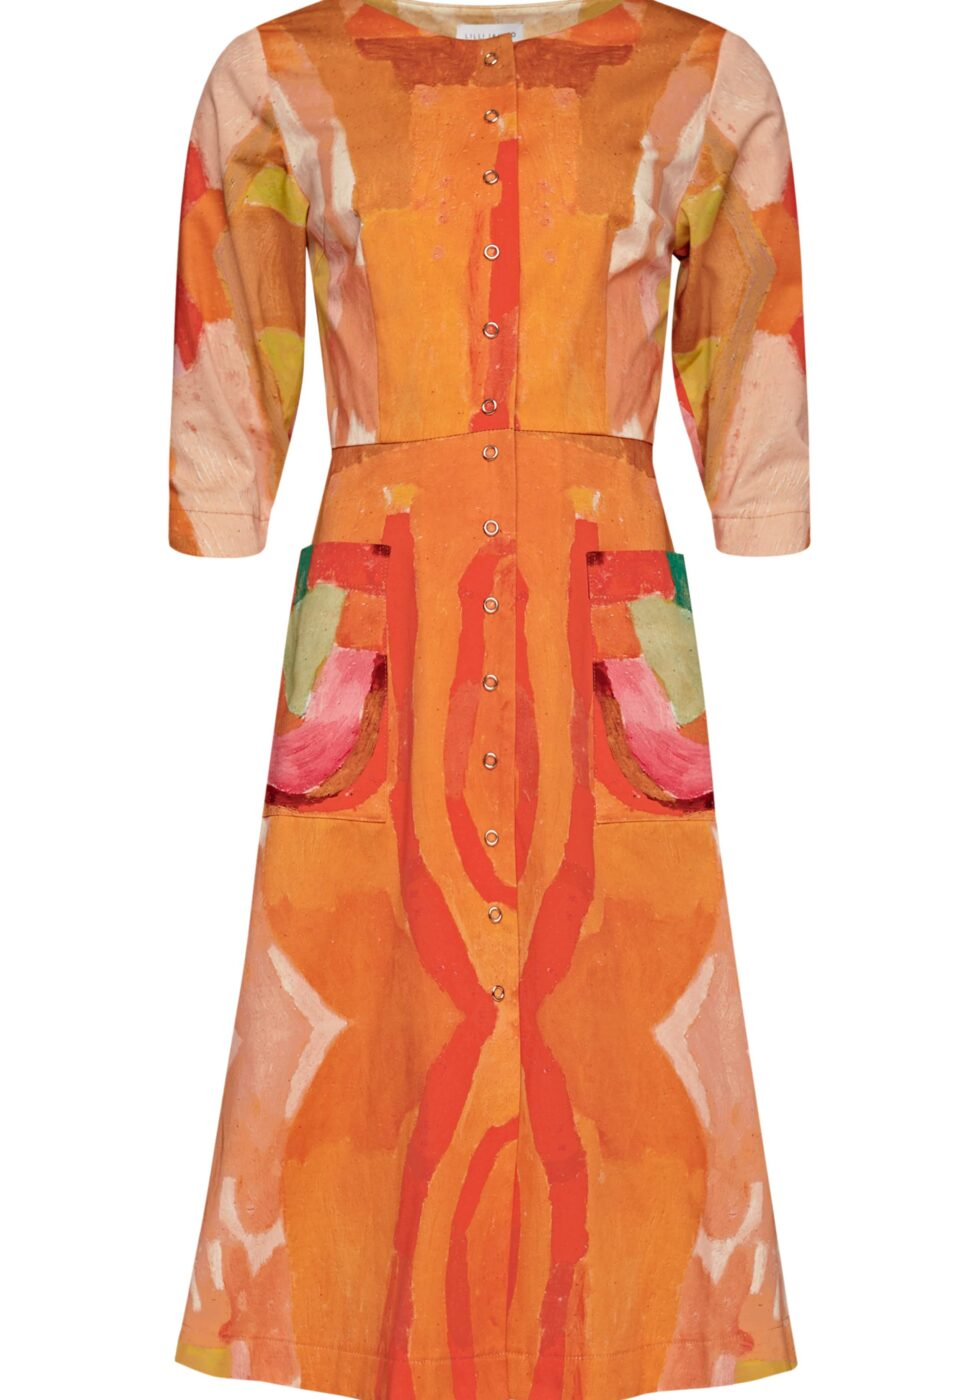 Aimee Cotton Dress with Pockets and Pressbuttons